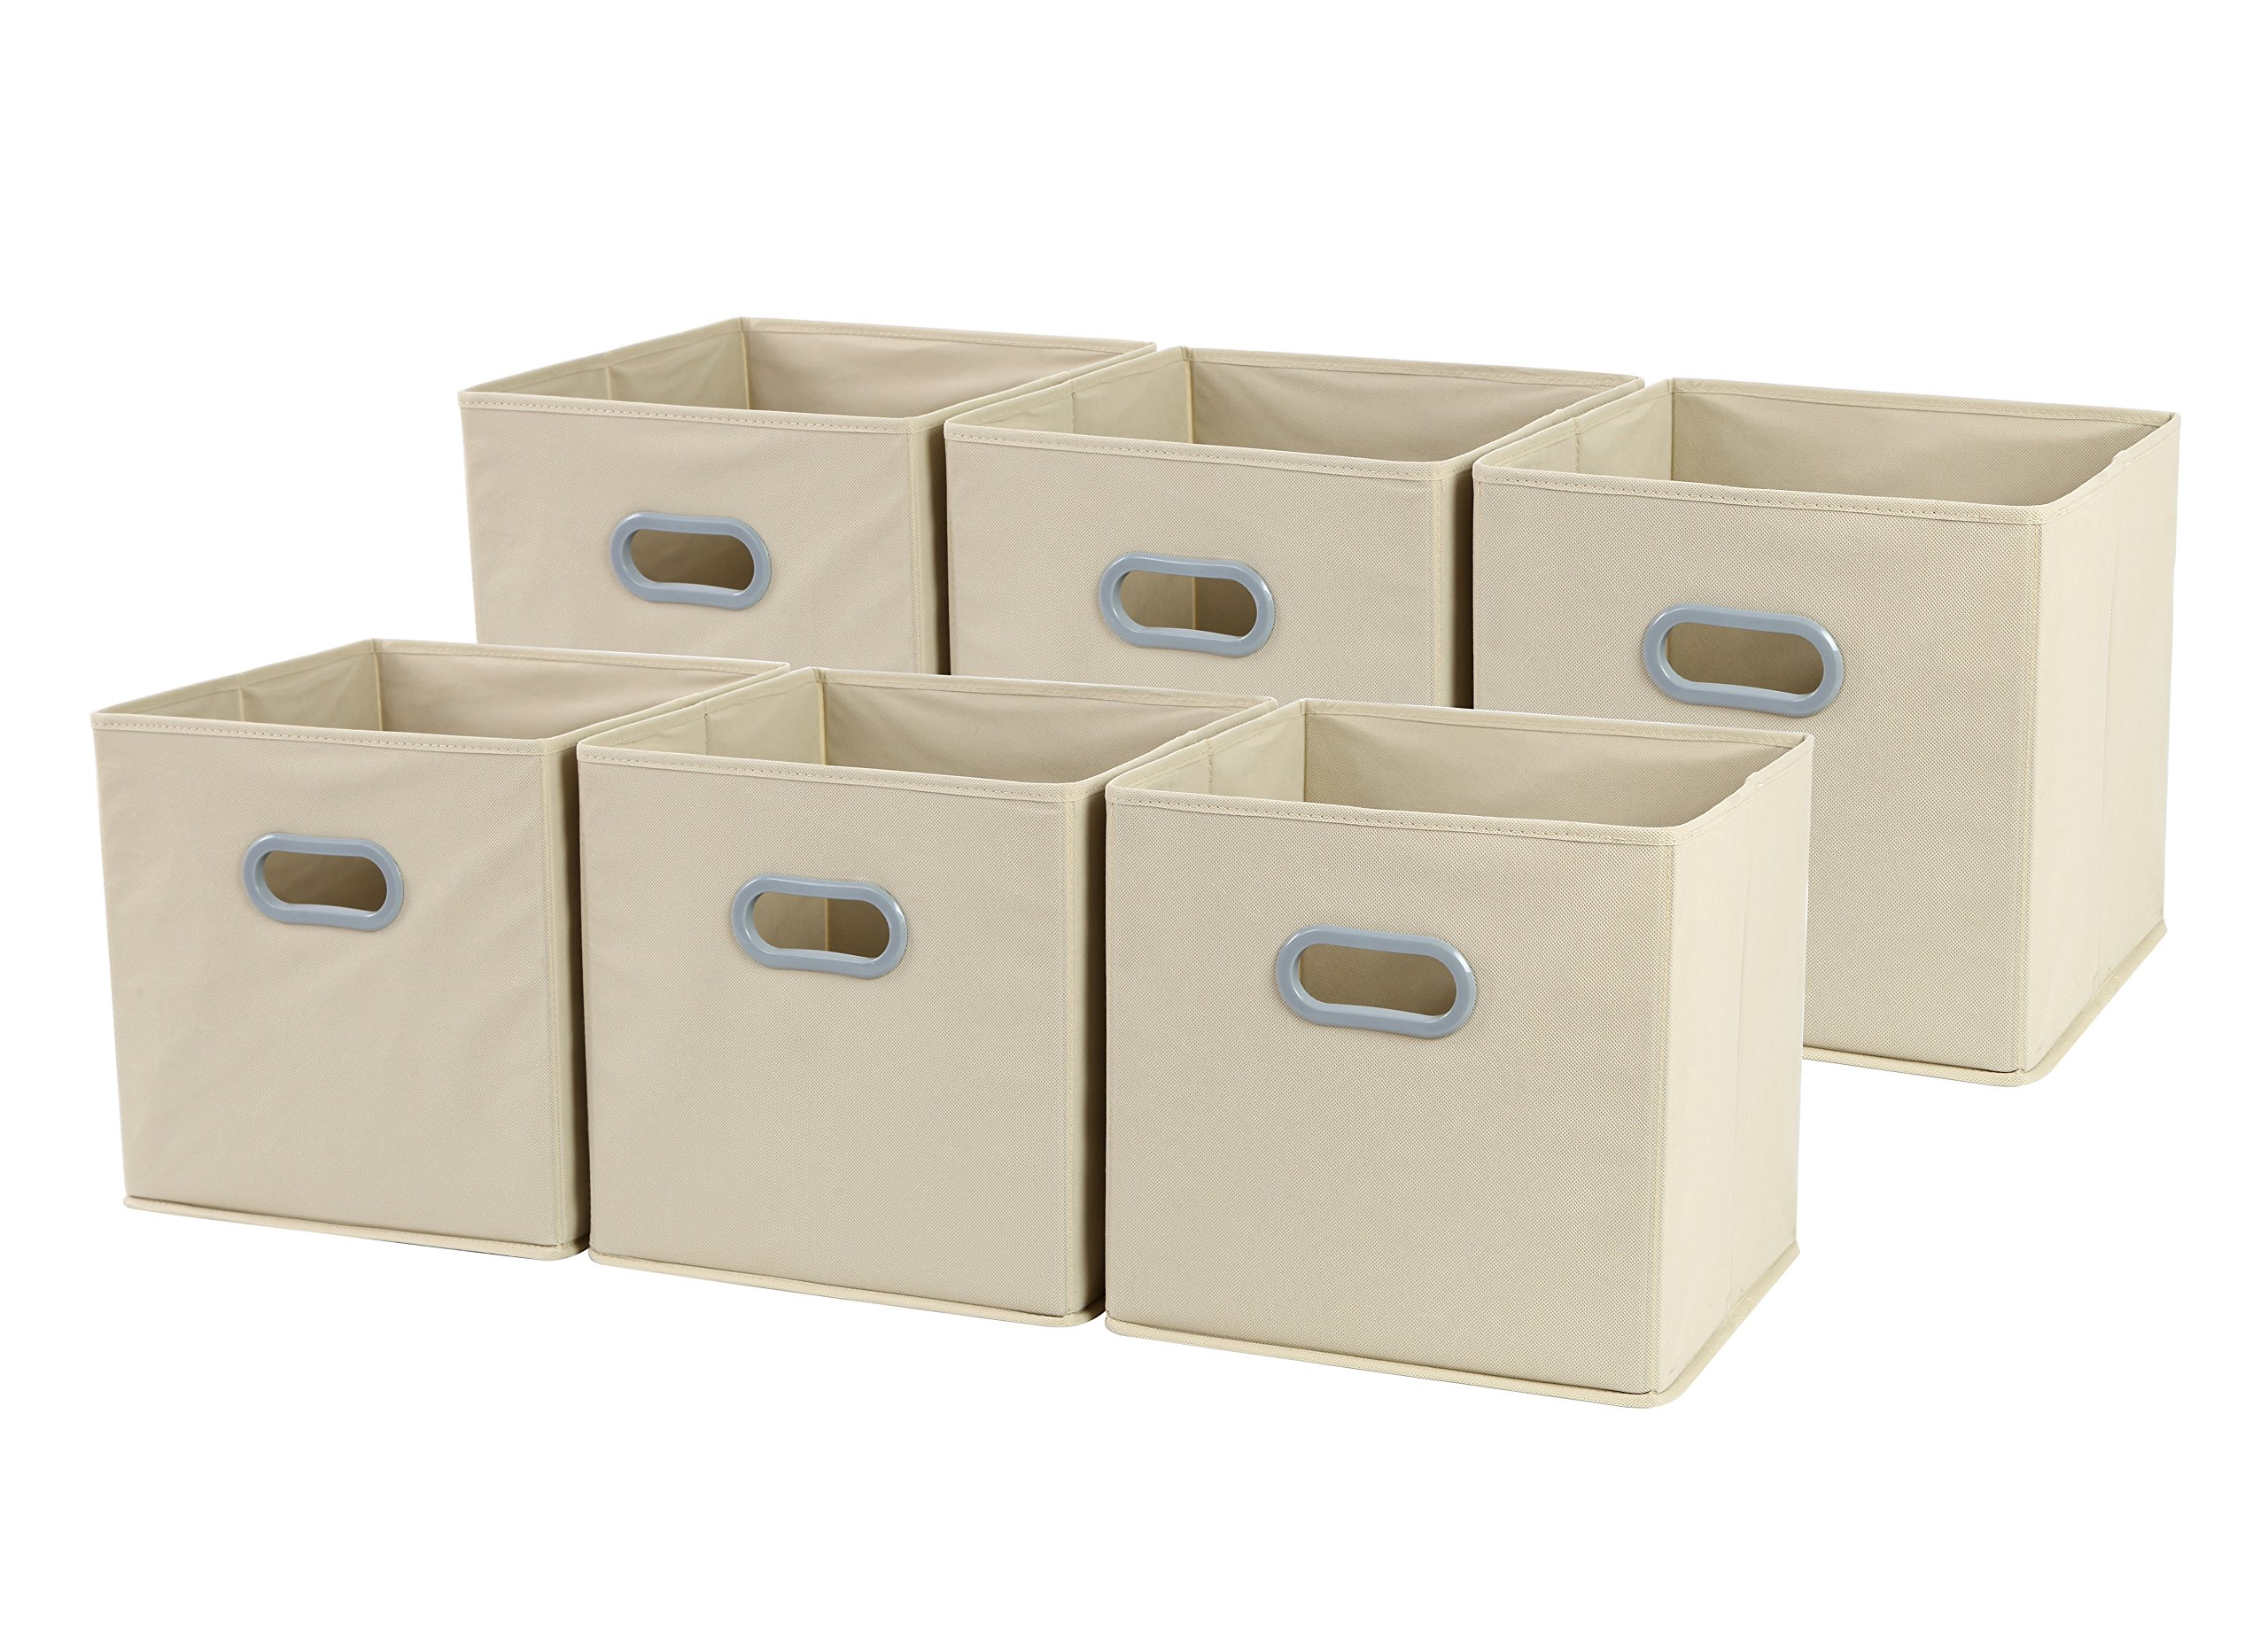 Sodynee New Large Foldable Cloth Storage Cube Basket Bins Organizer Containers Drawers, 6 Pack, 12'' x 12'' x 12'', Beige by Sodynee